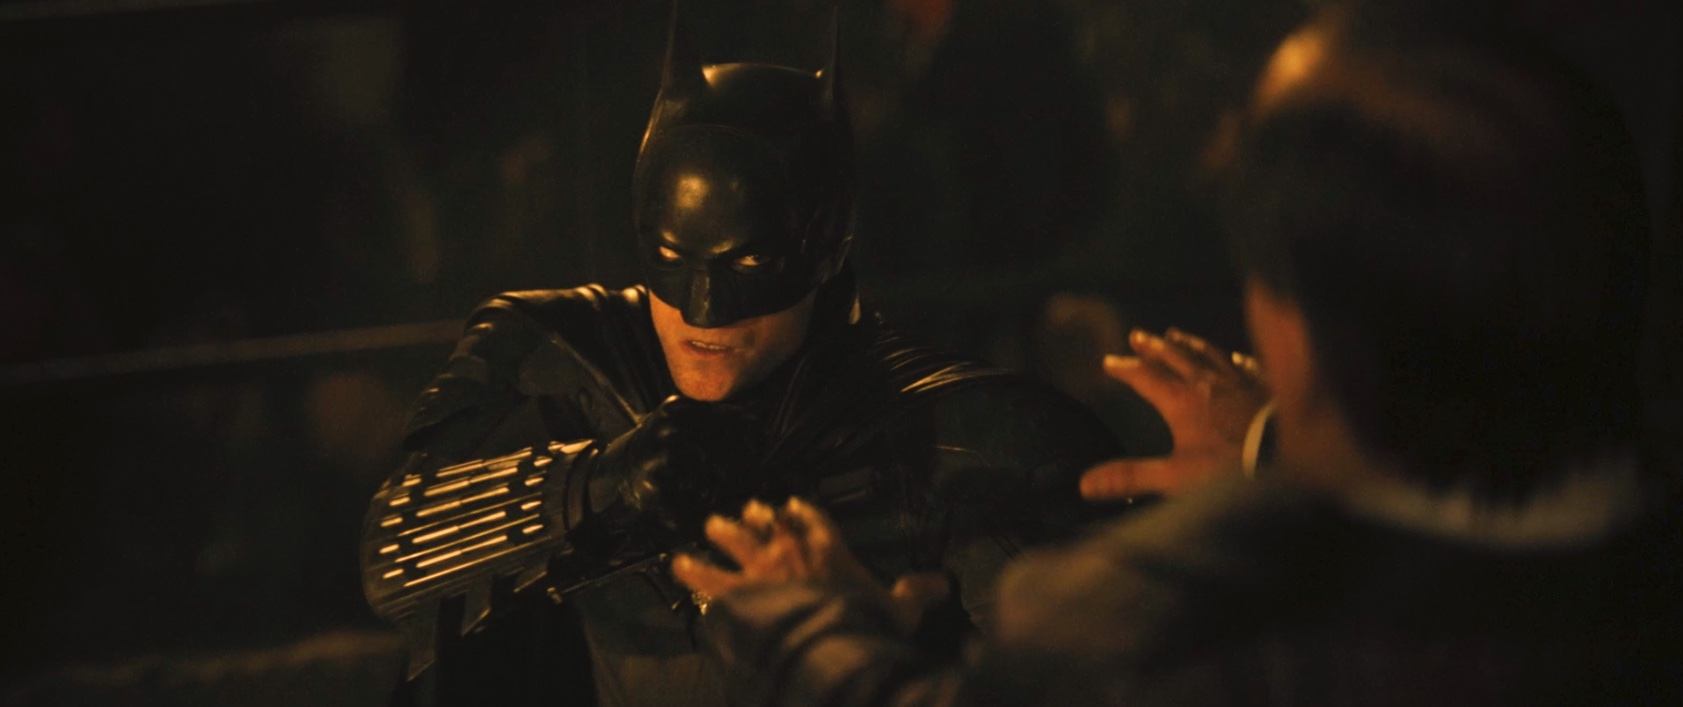 Robert Pattinson's Batman fights the Penguin in the glow of a fire